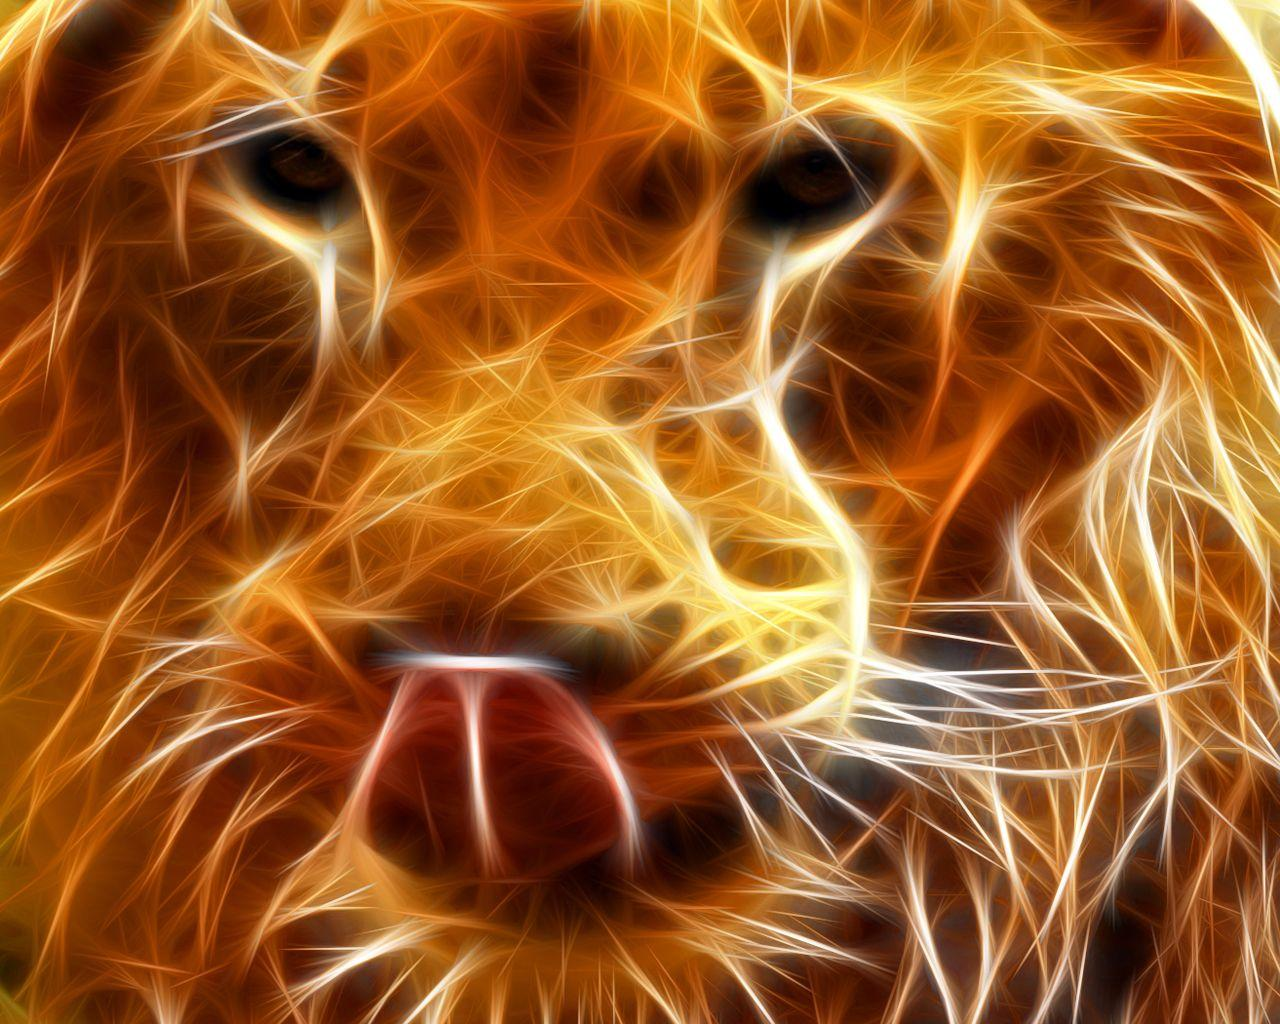 Backgrounds For Cool Fire Lion Backgrounds | Www.8backgrounds.com